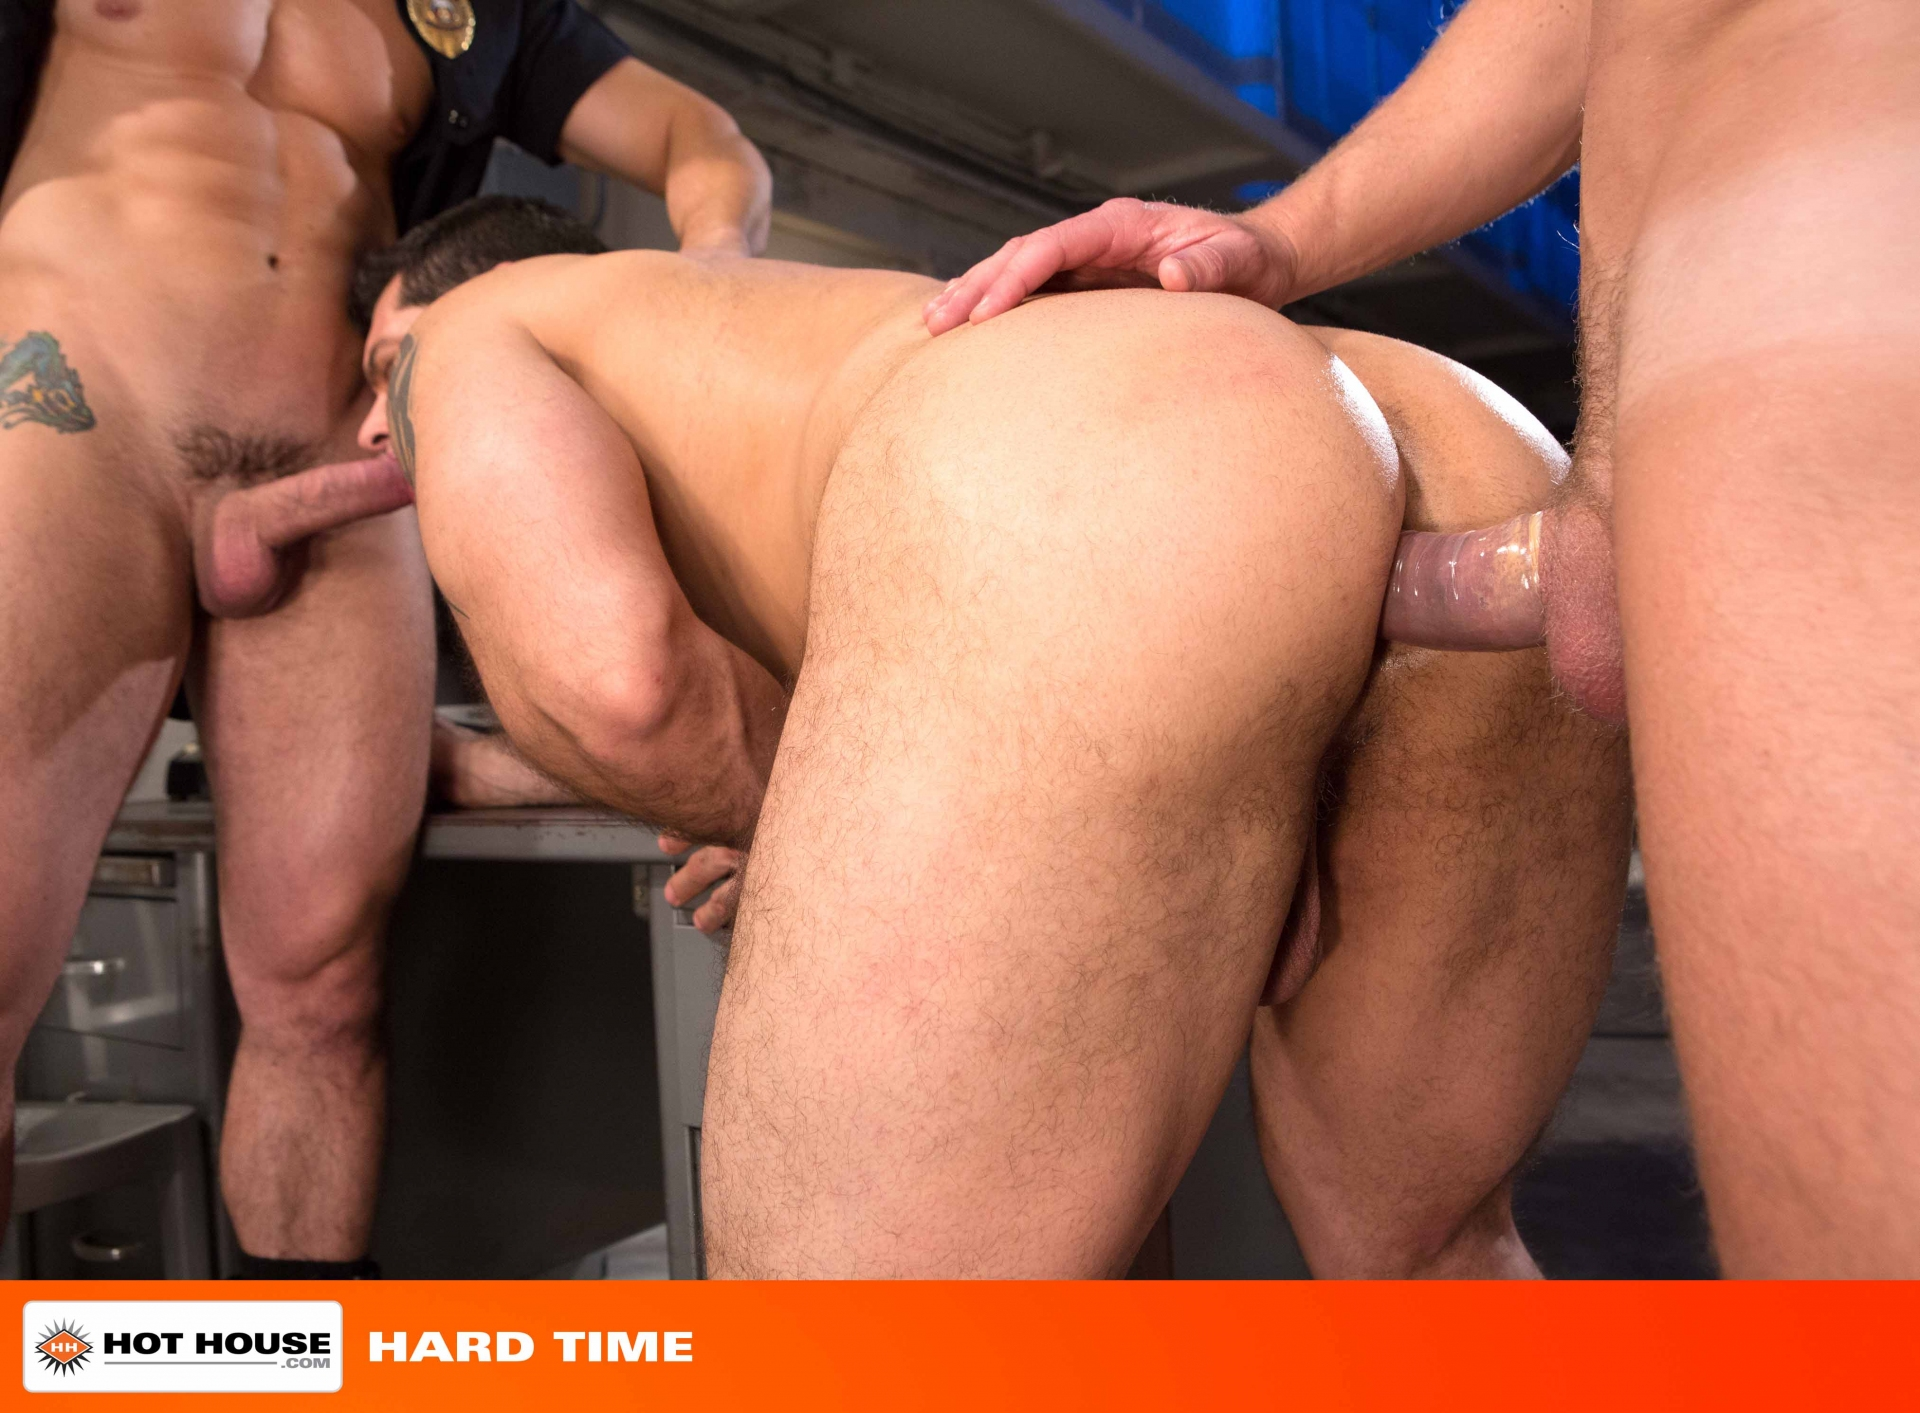 Hot House – Hard Time (Scene 3)